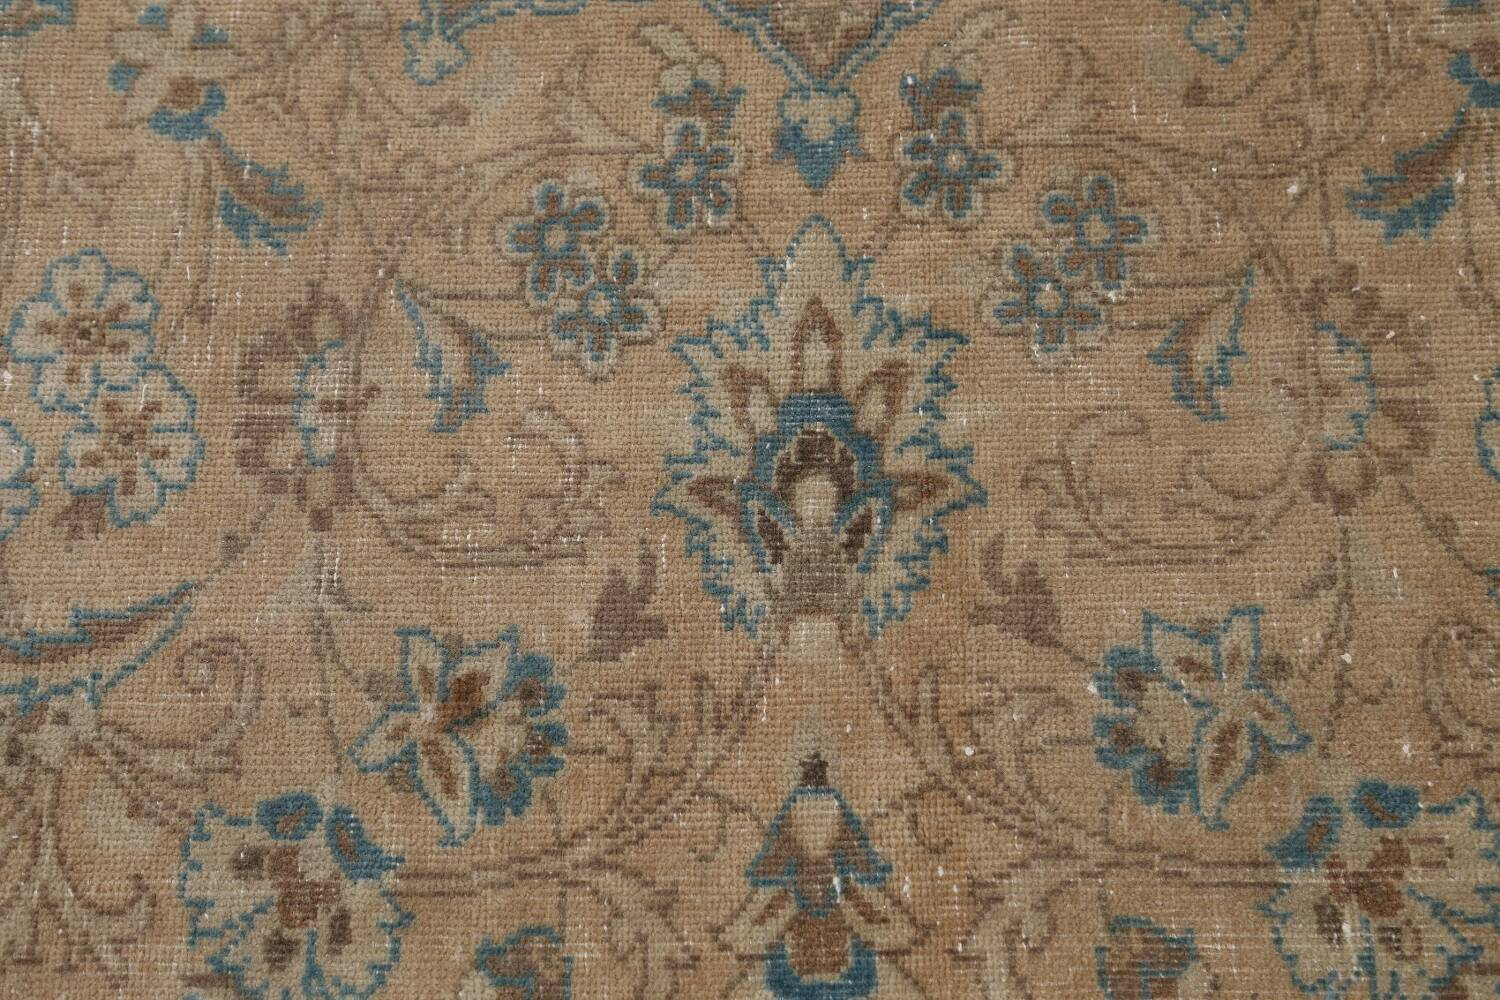 Antique Muted Floral Mashad Persian Area Rug 9x13 image 10